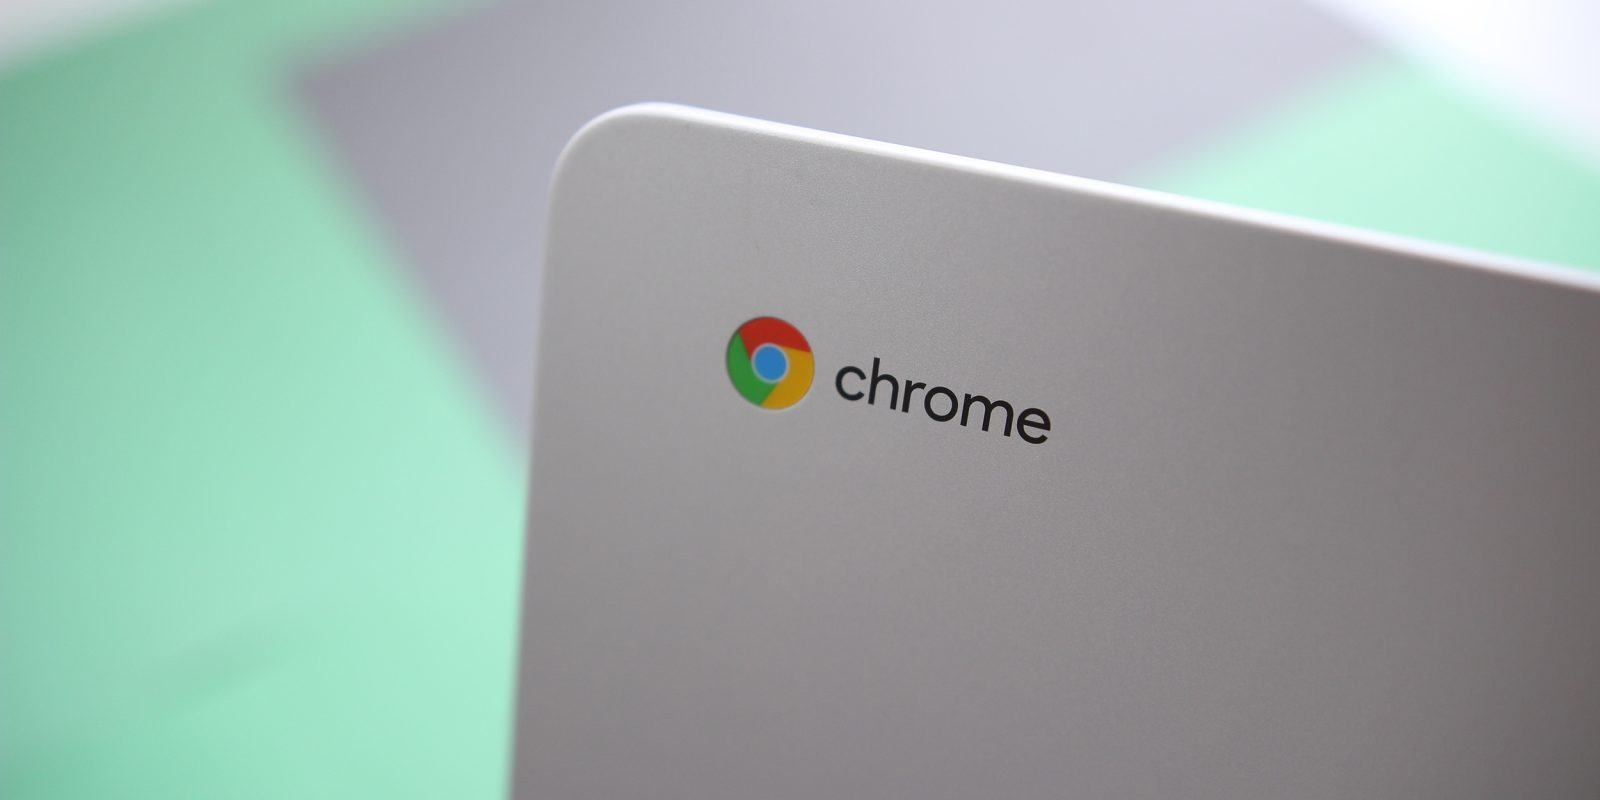 Google Chrome is now better at removing software that